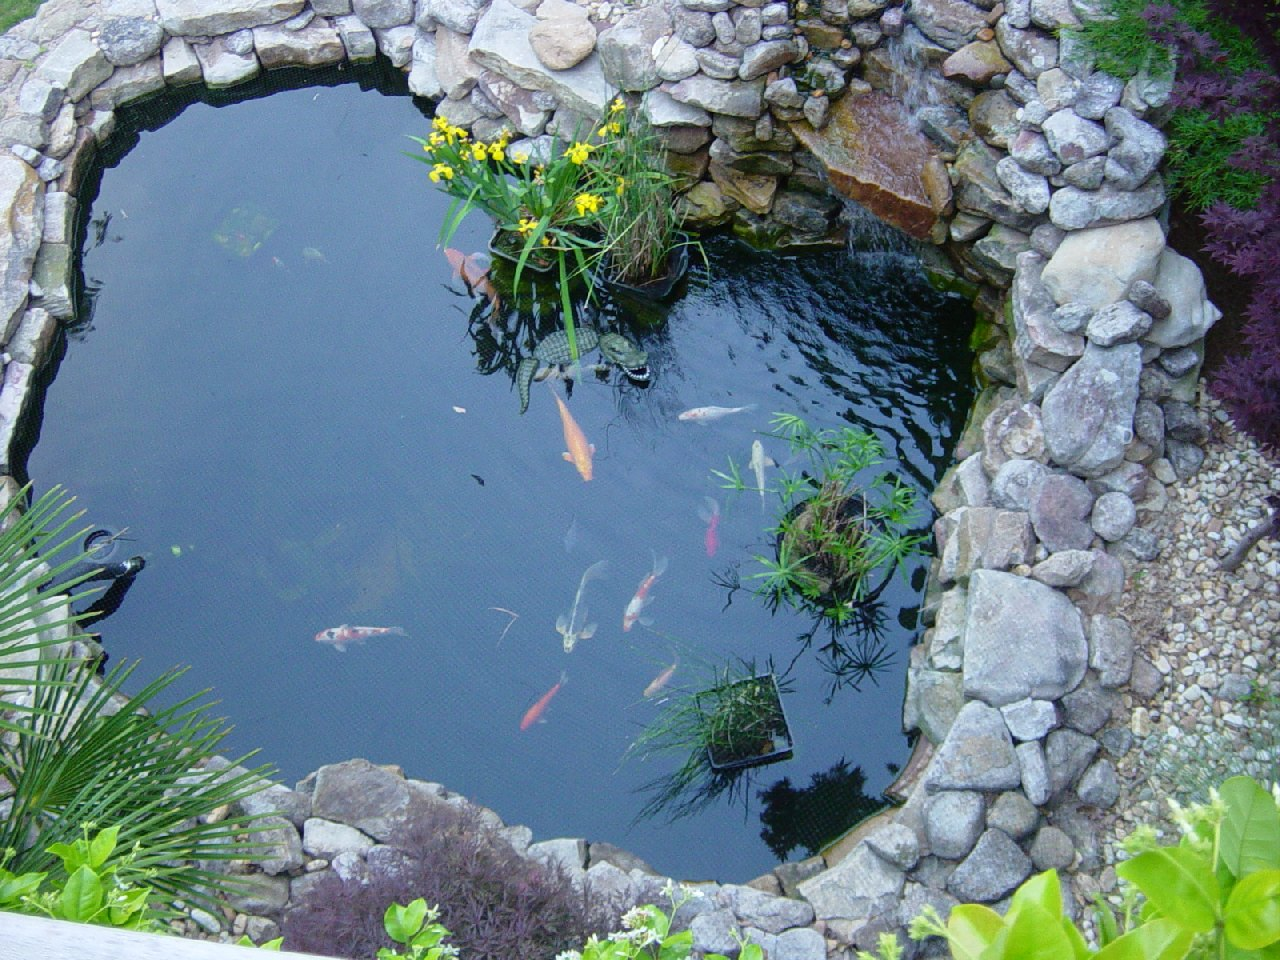 Luxury koi fish pond design ideas home trendy for Koi pond design